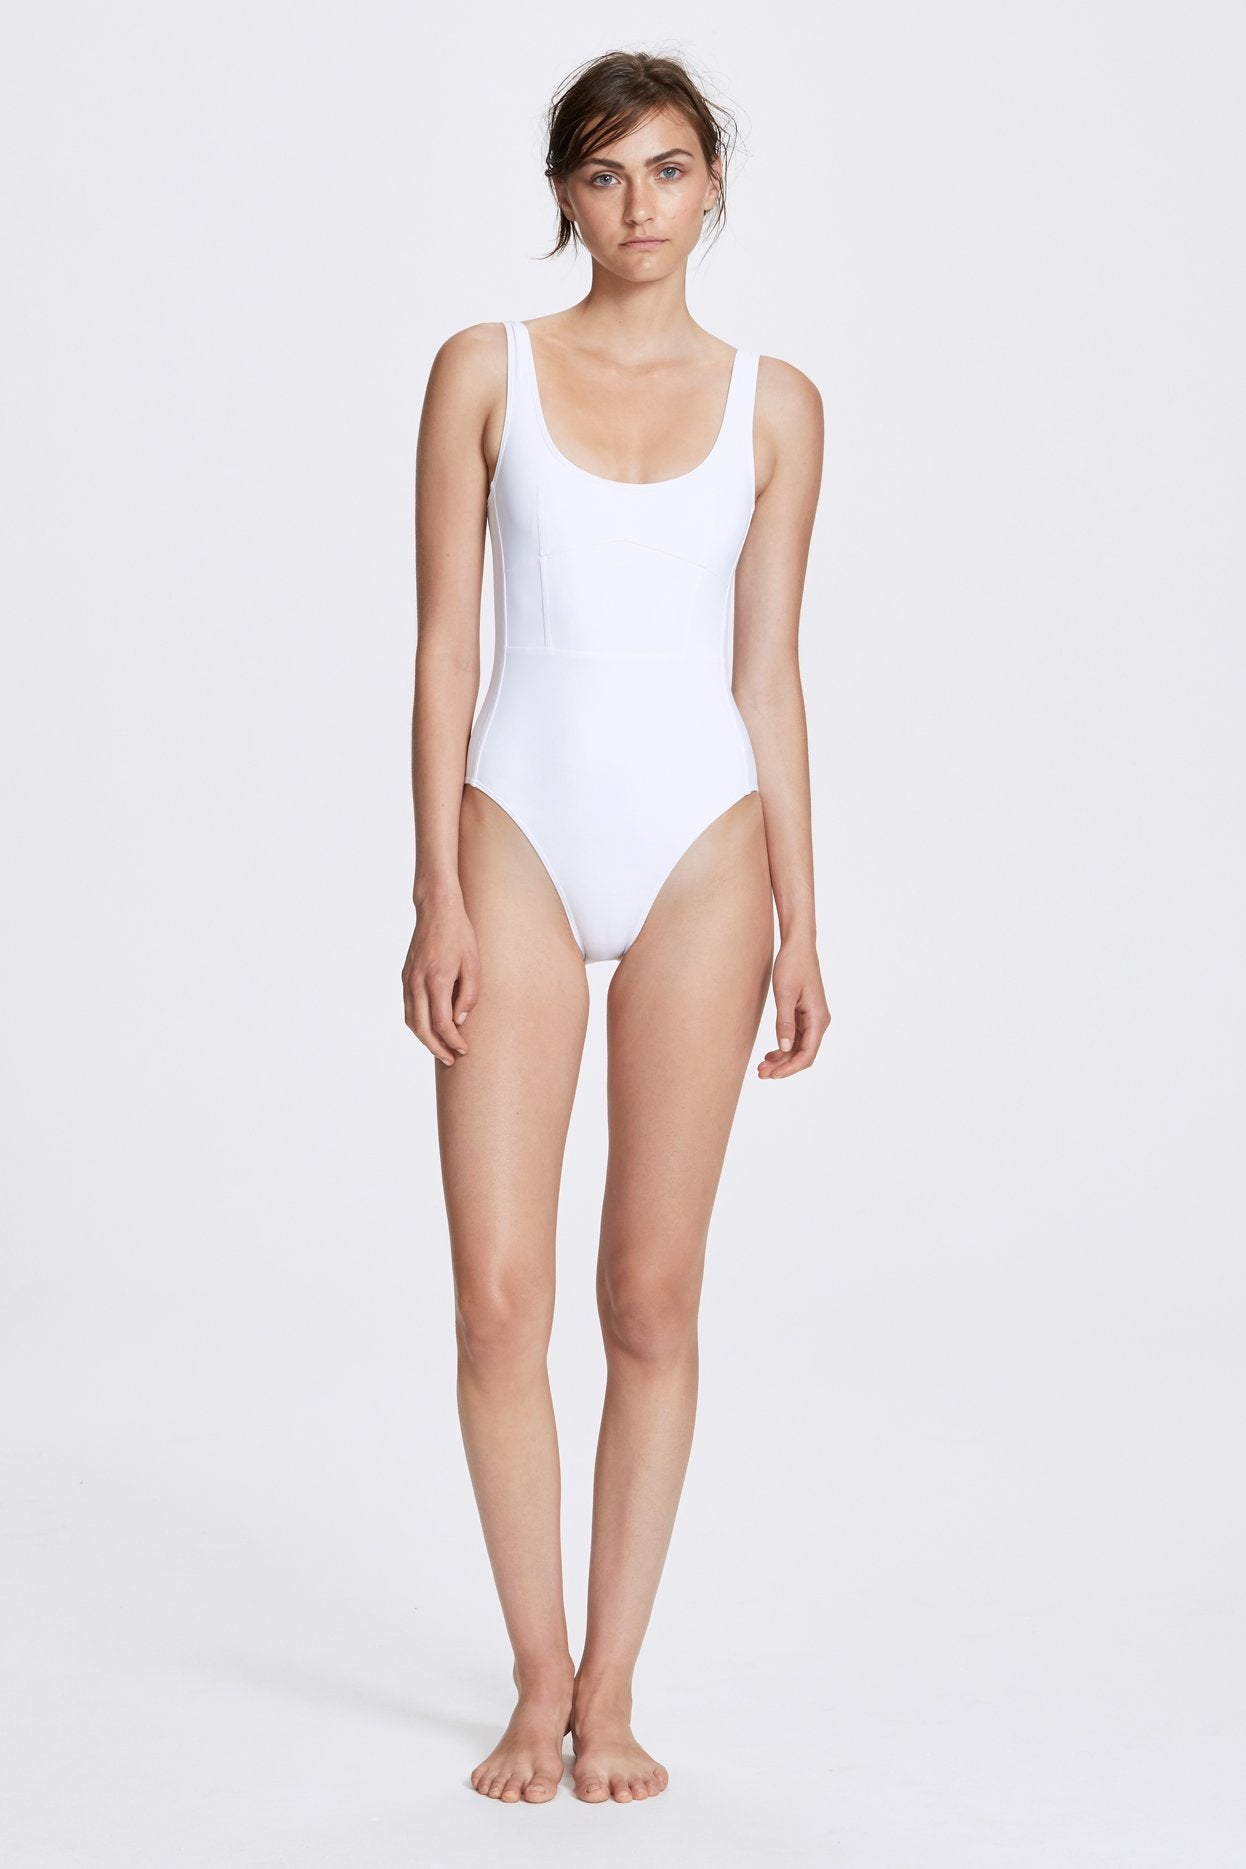 Her Line Marni Swimwear One Piece Milk White Front